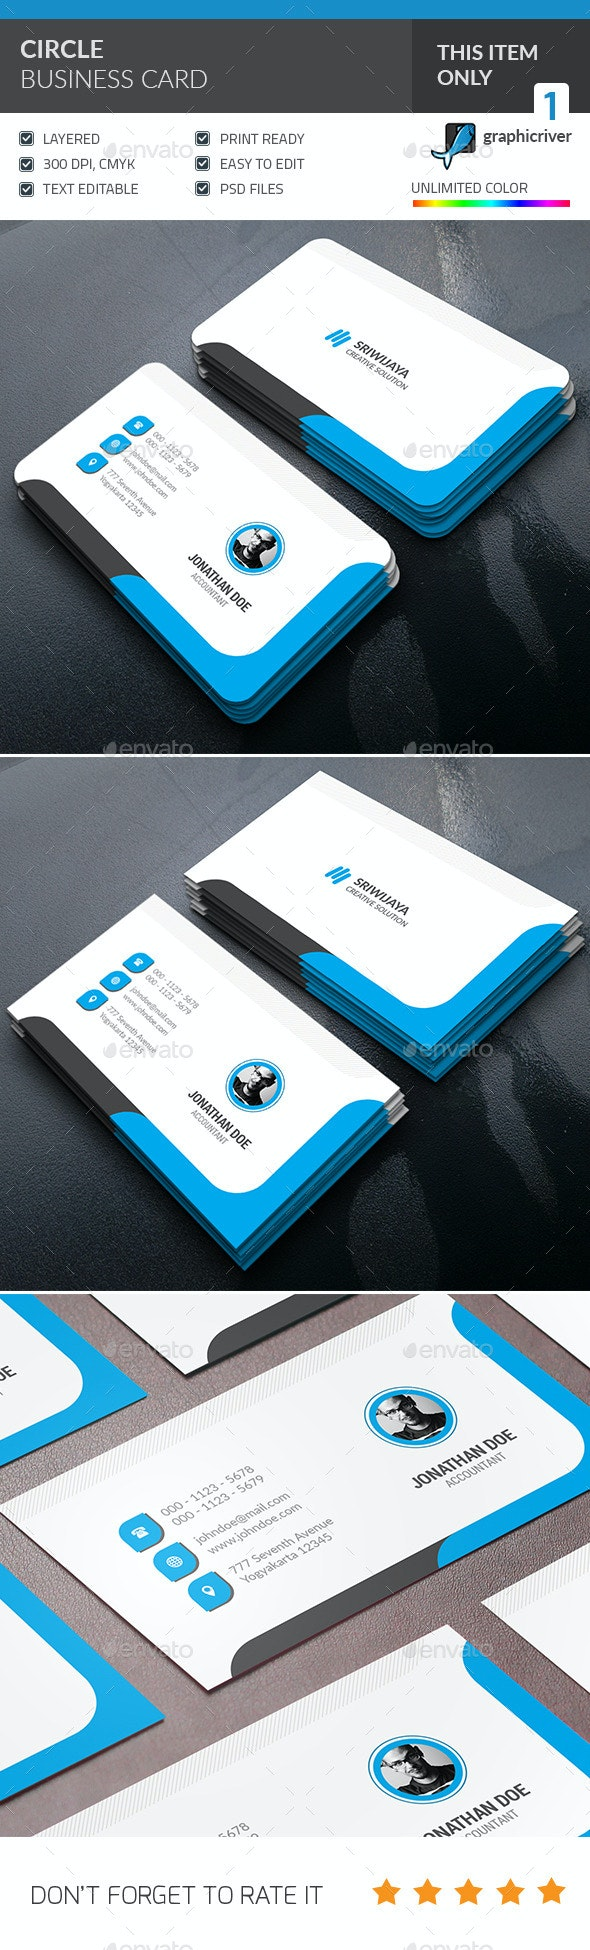 Circle Business Card - Creative Business Cards